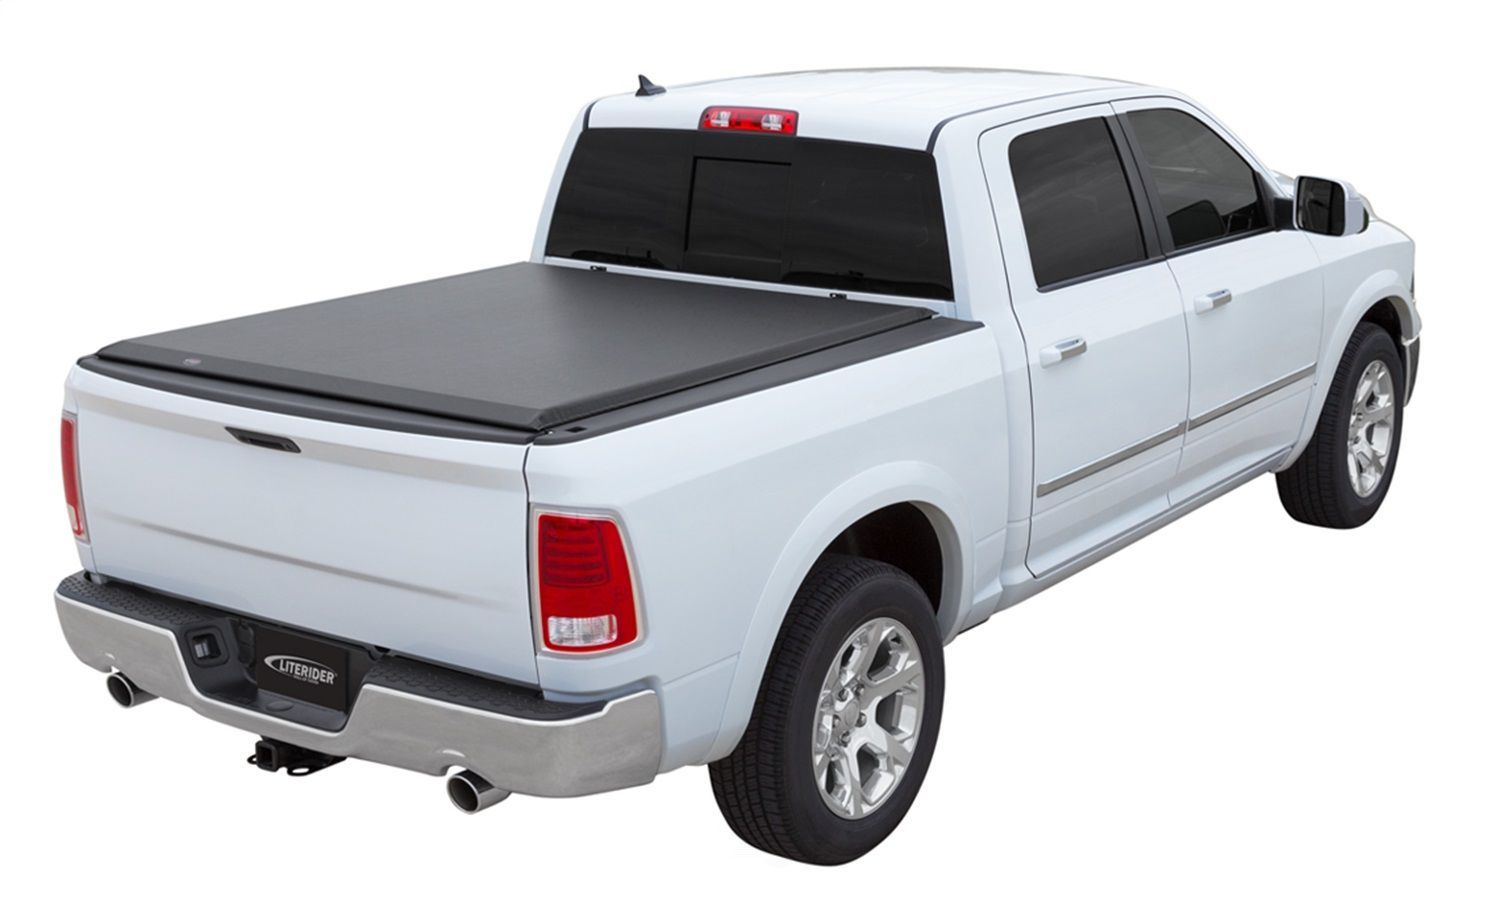 ACCESS COVER - Literider Roll-up Cover - XBP 34079